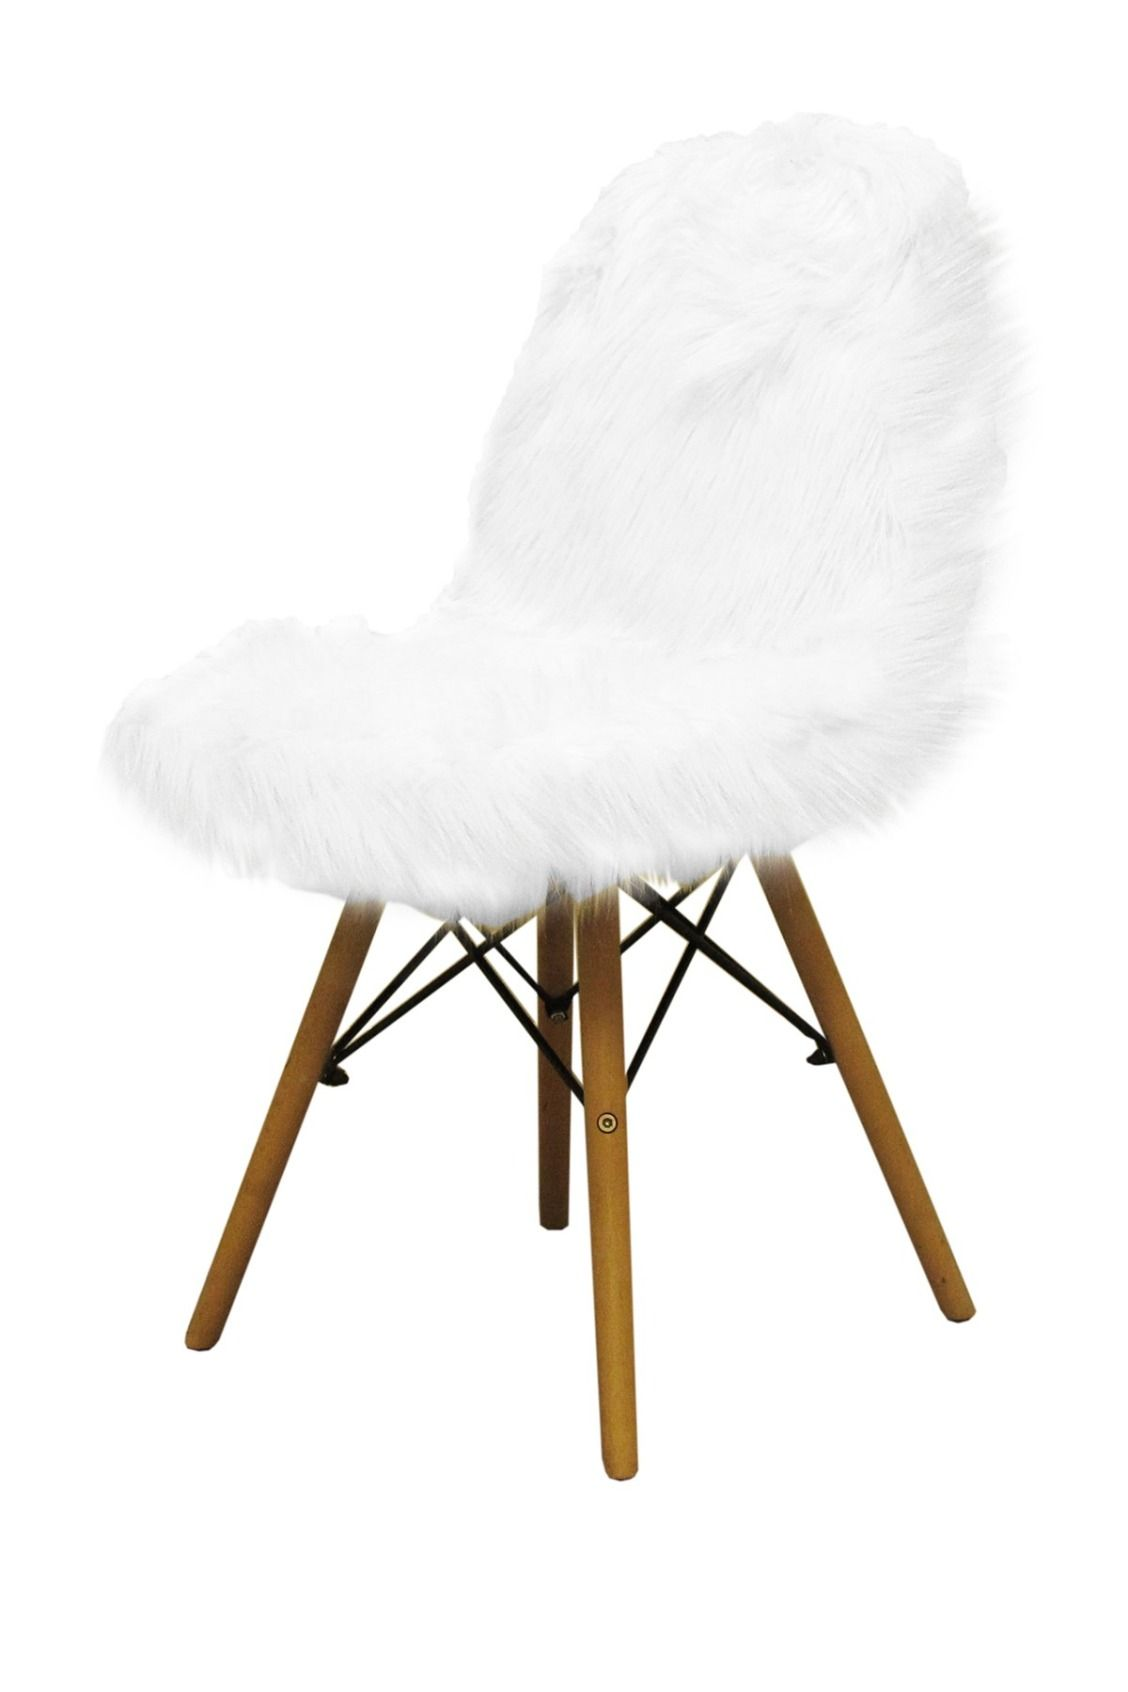 Terrific American Atelier Banks White Faux Fur Chair Bedroom Caraccident5 Cool Chair Designs And Ideas Caraccident5Info